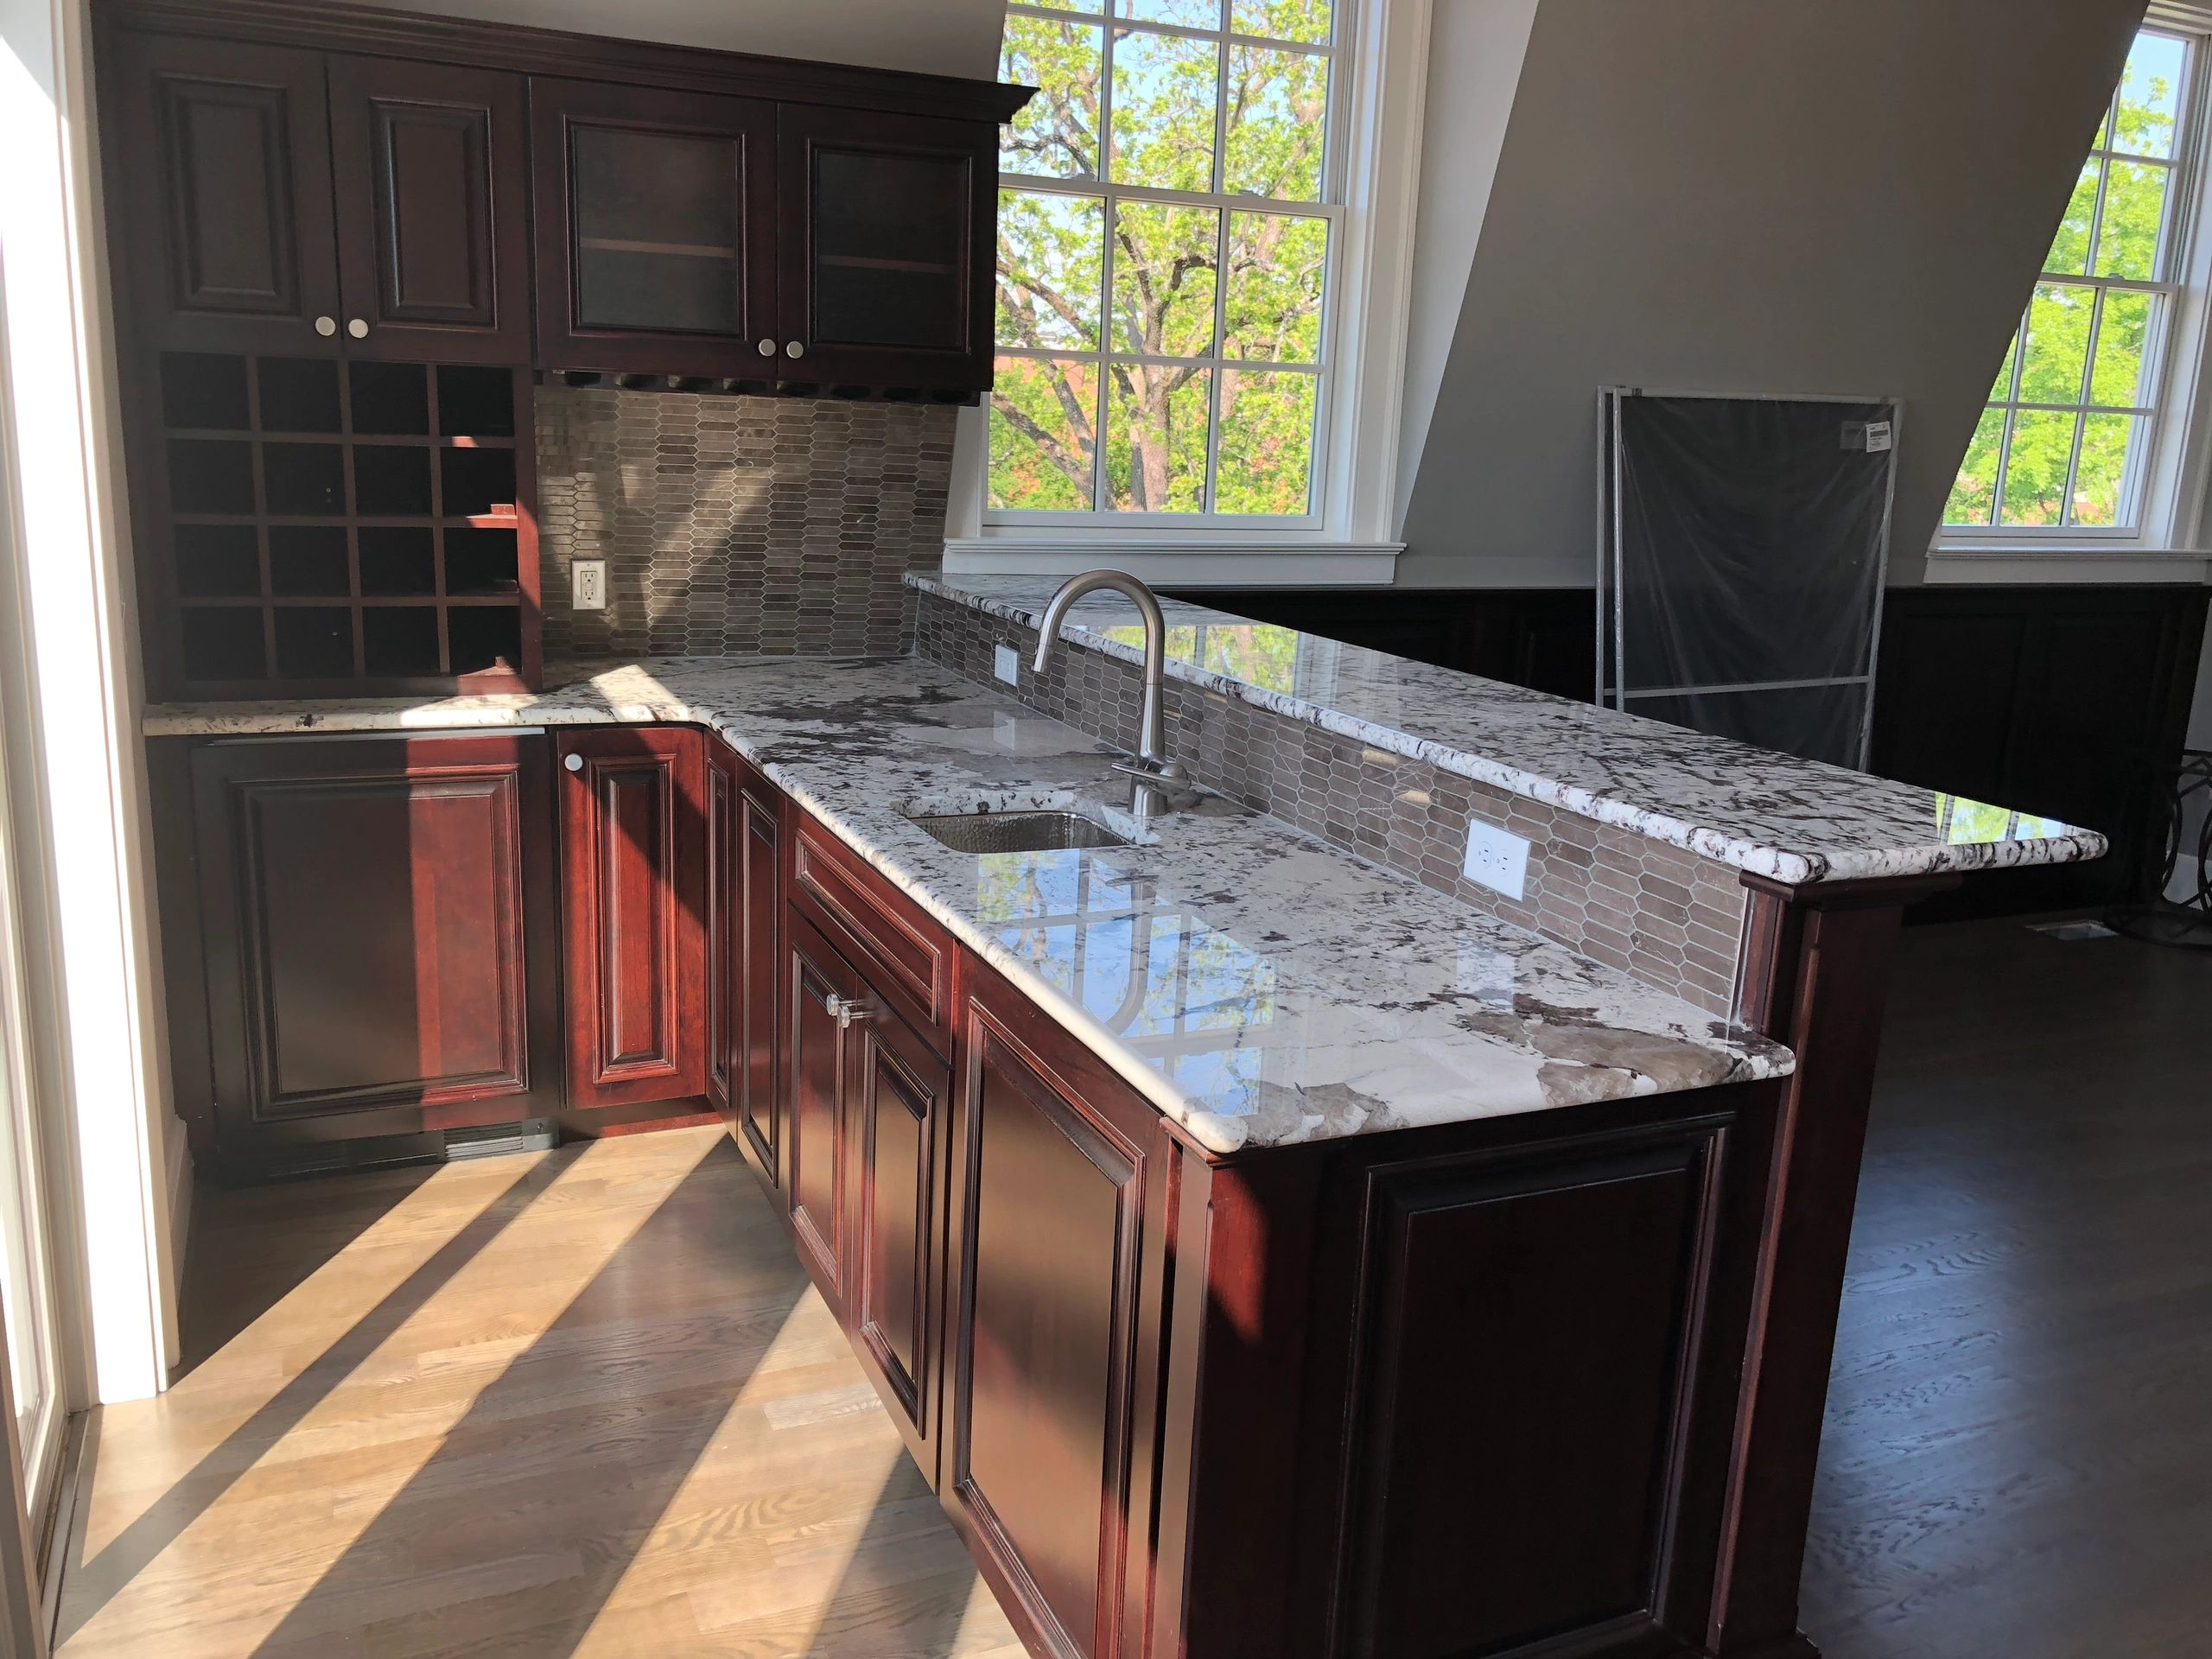 Virginia Cabinetry Llc Custom Cabinets Kitchen Cabinets